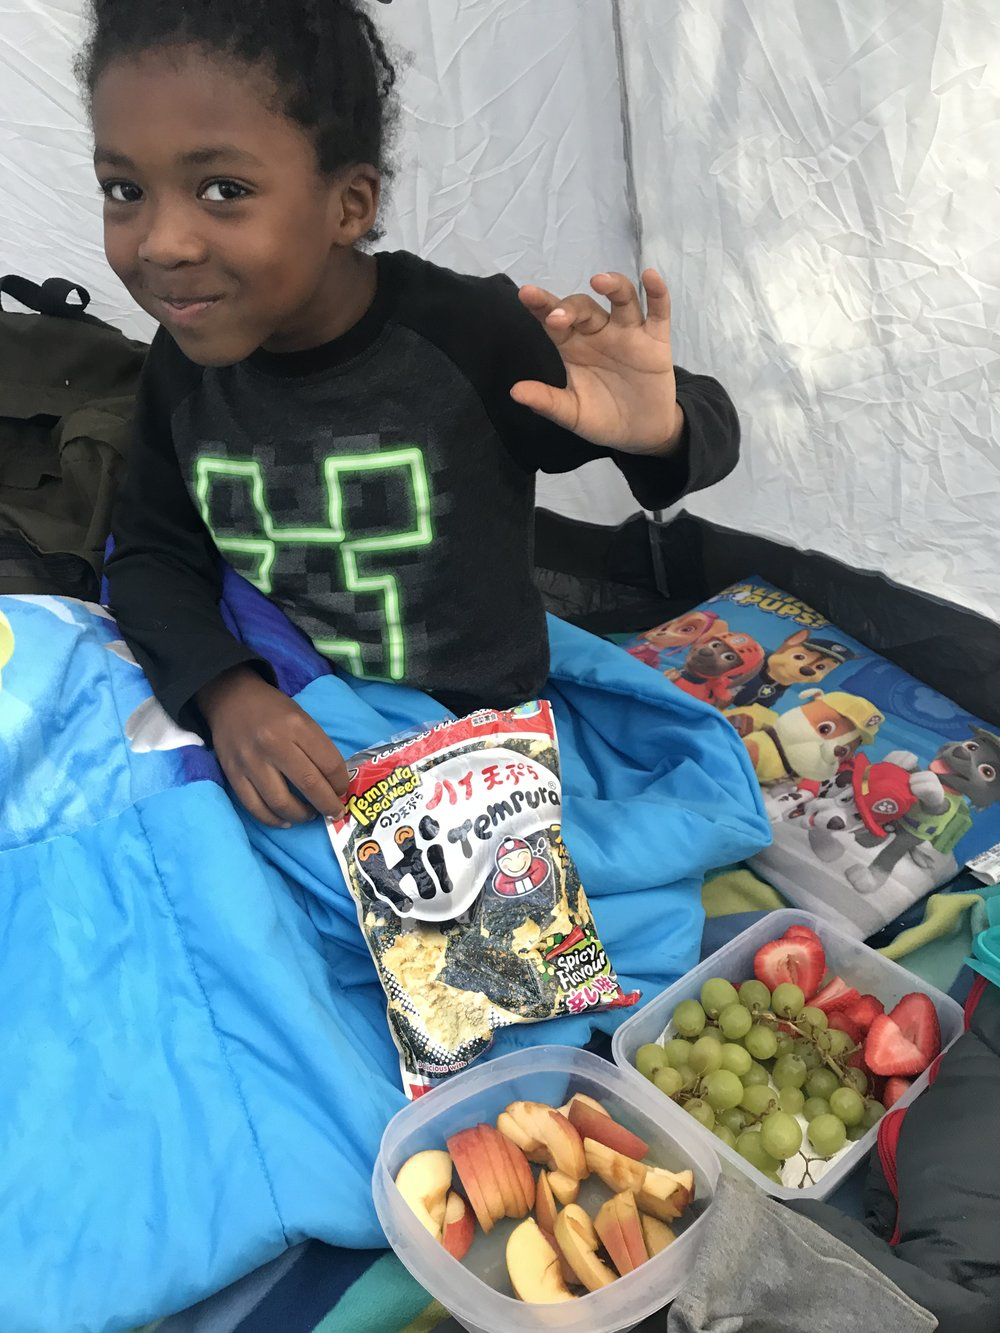 Snack game was crazy in the tent